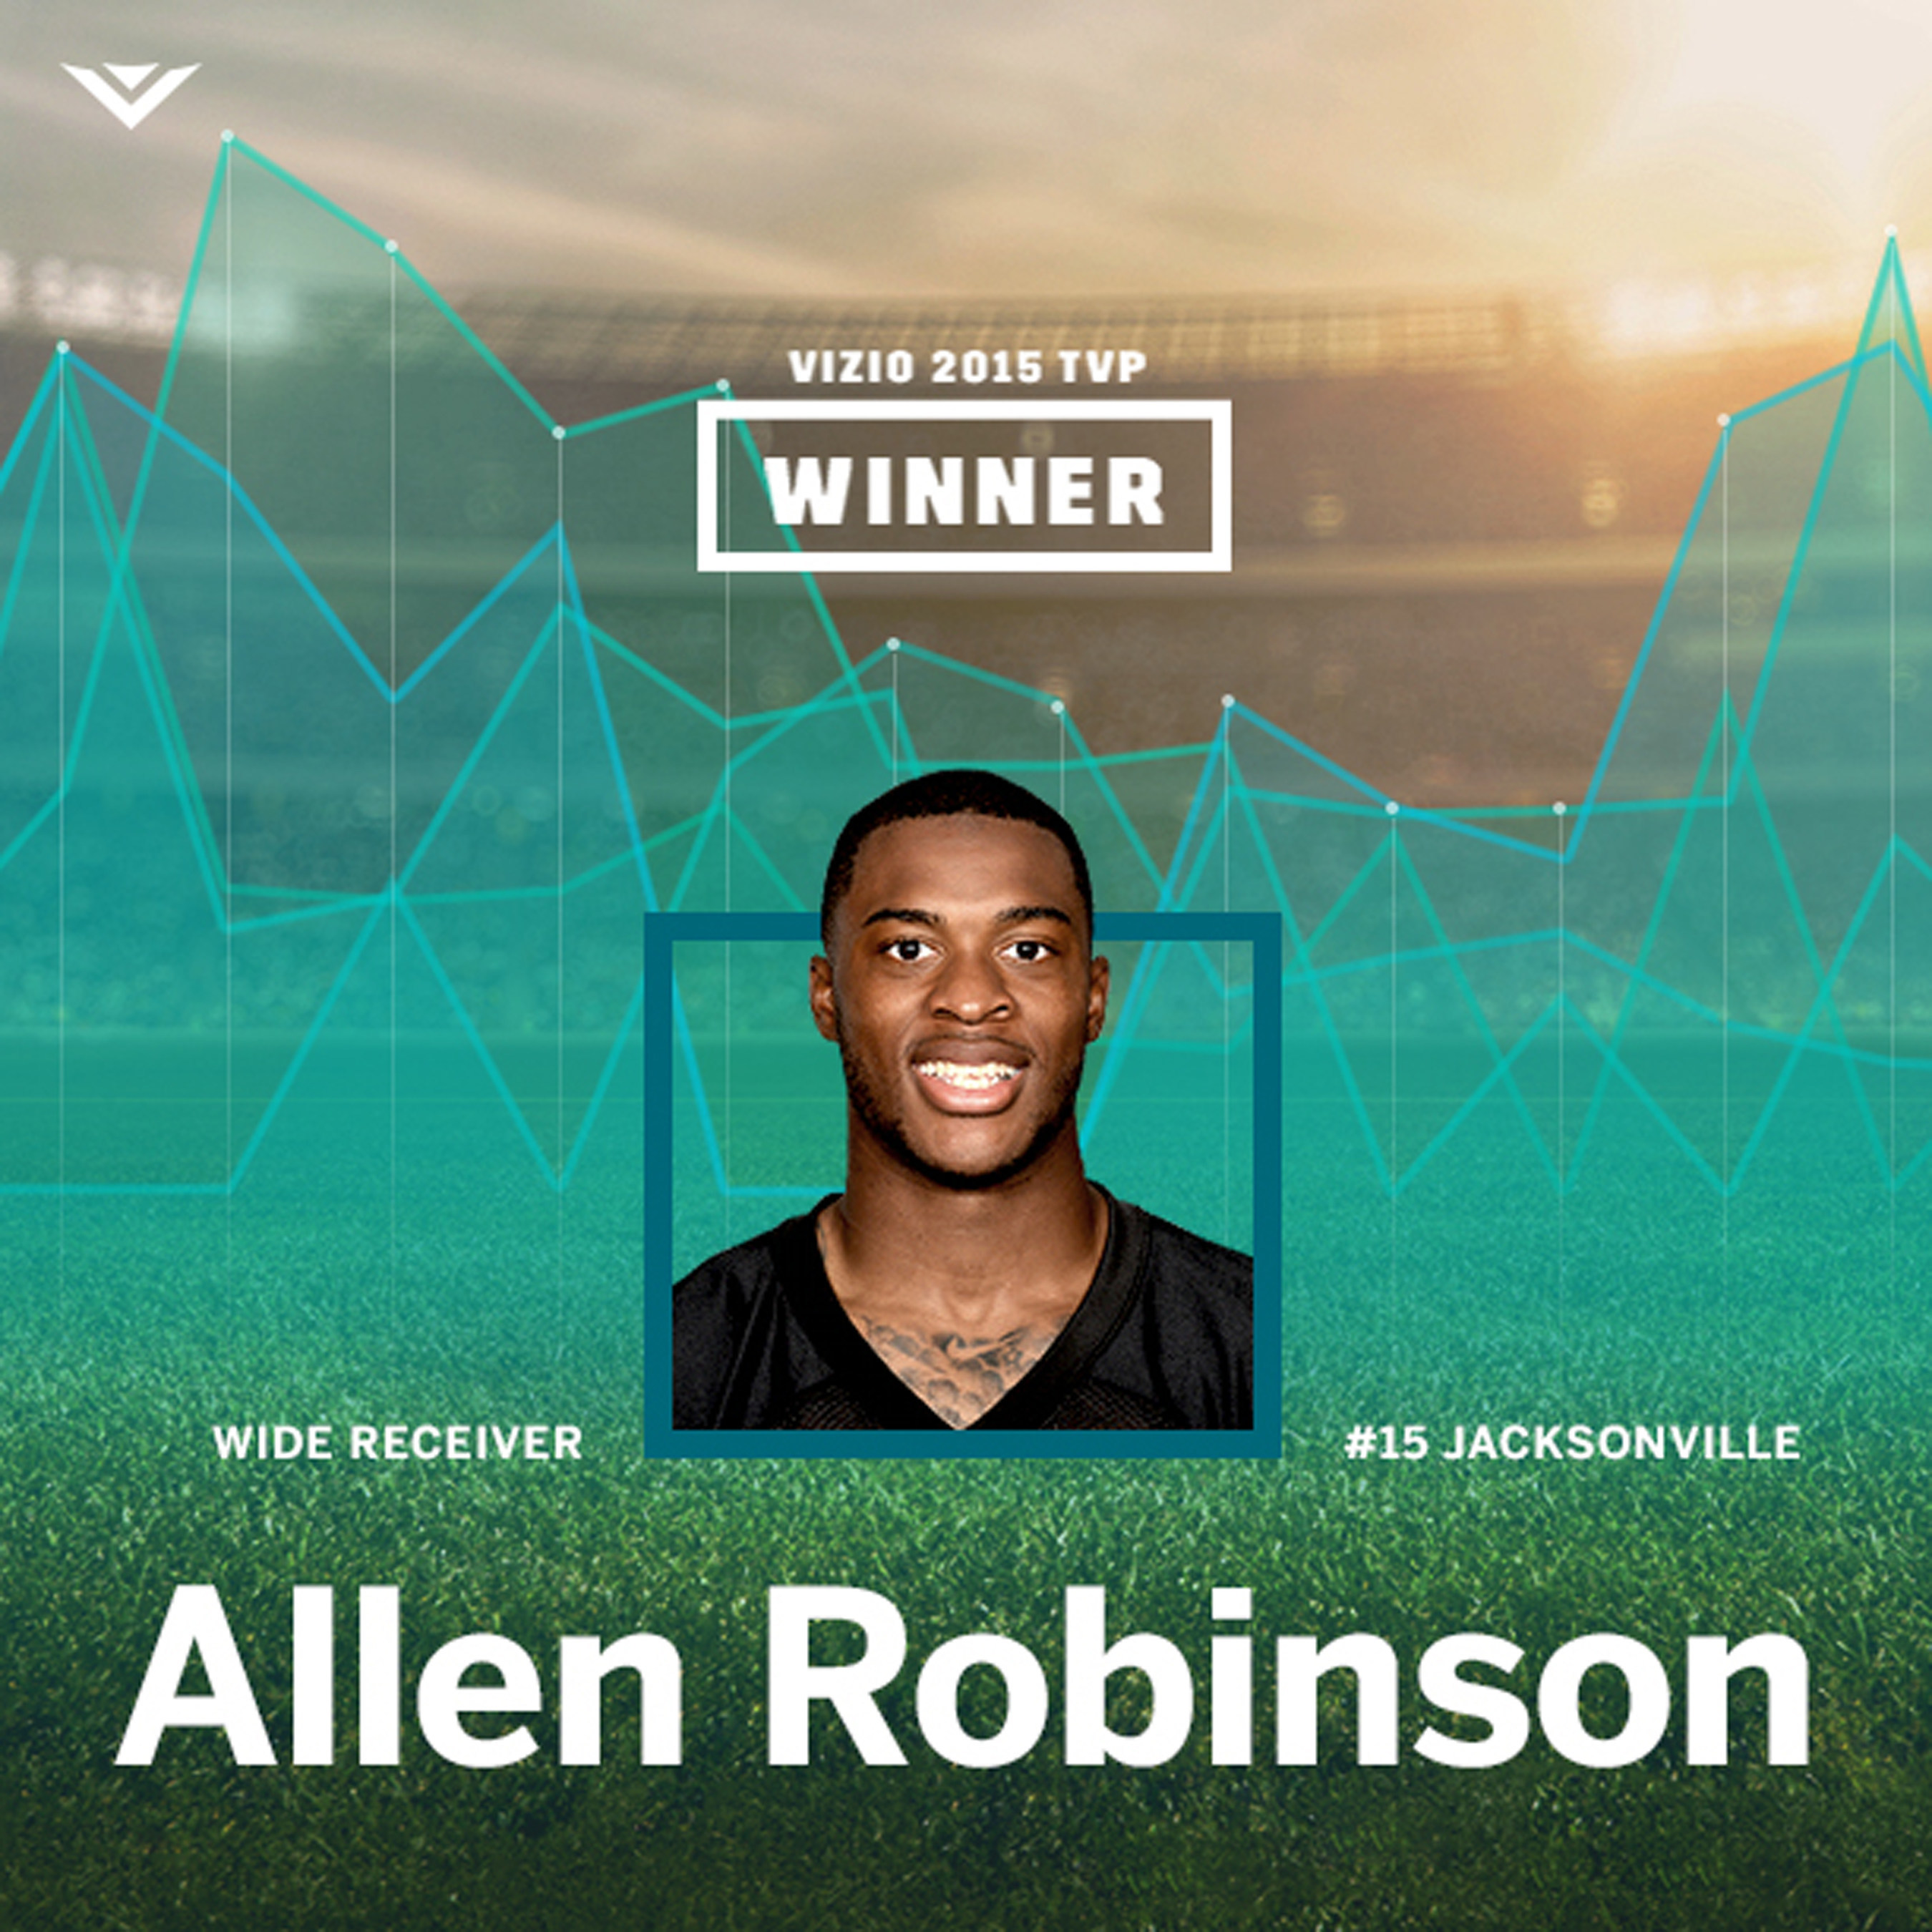 Fans Select Wide Receiver Allen Robinson As the 2015 VIZIO Top Value Performer. Robinson Earns Title Thanks to Fan Votes Recognizing A Dominant 2015 On-Field Performance